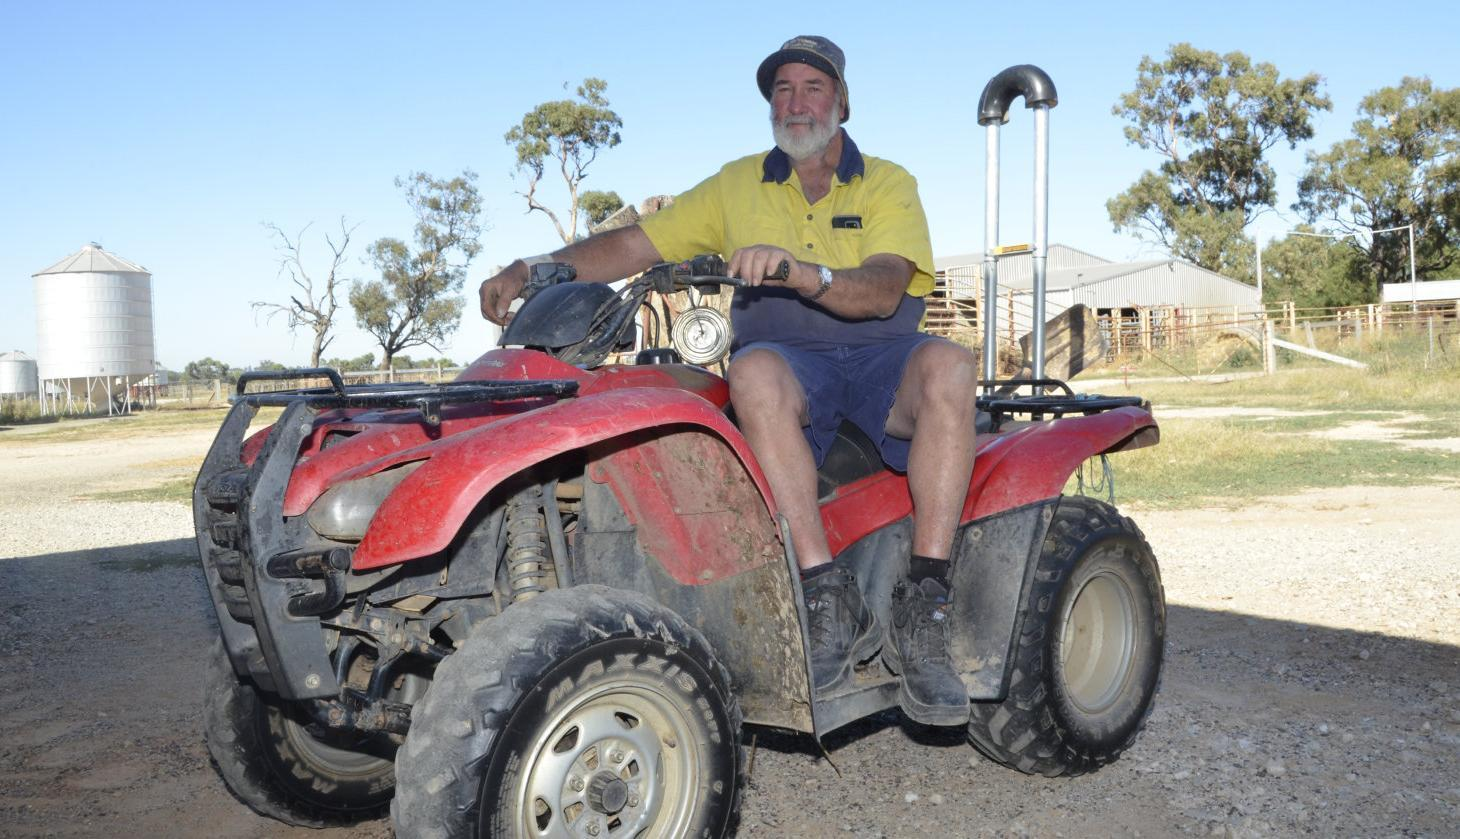 Quad safety rebates claimed